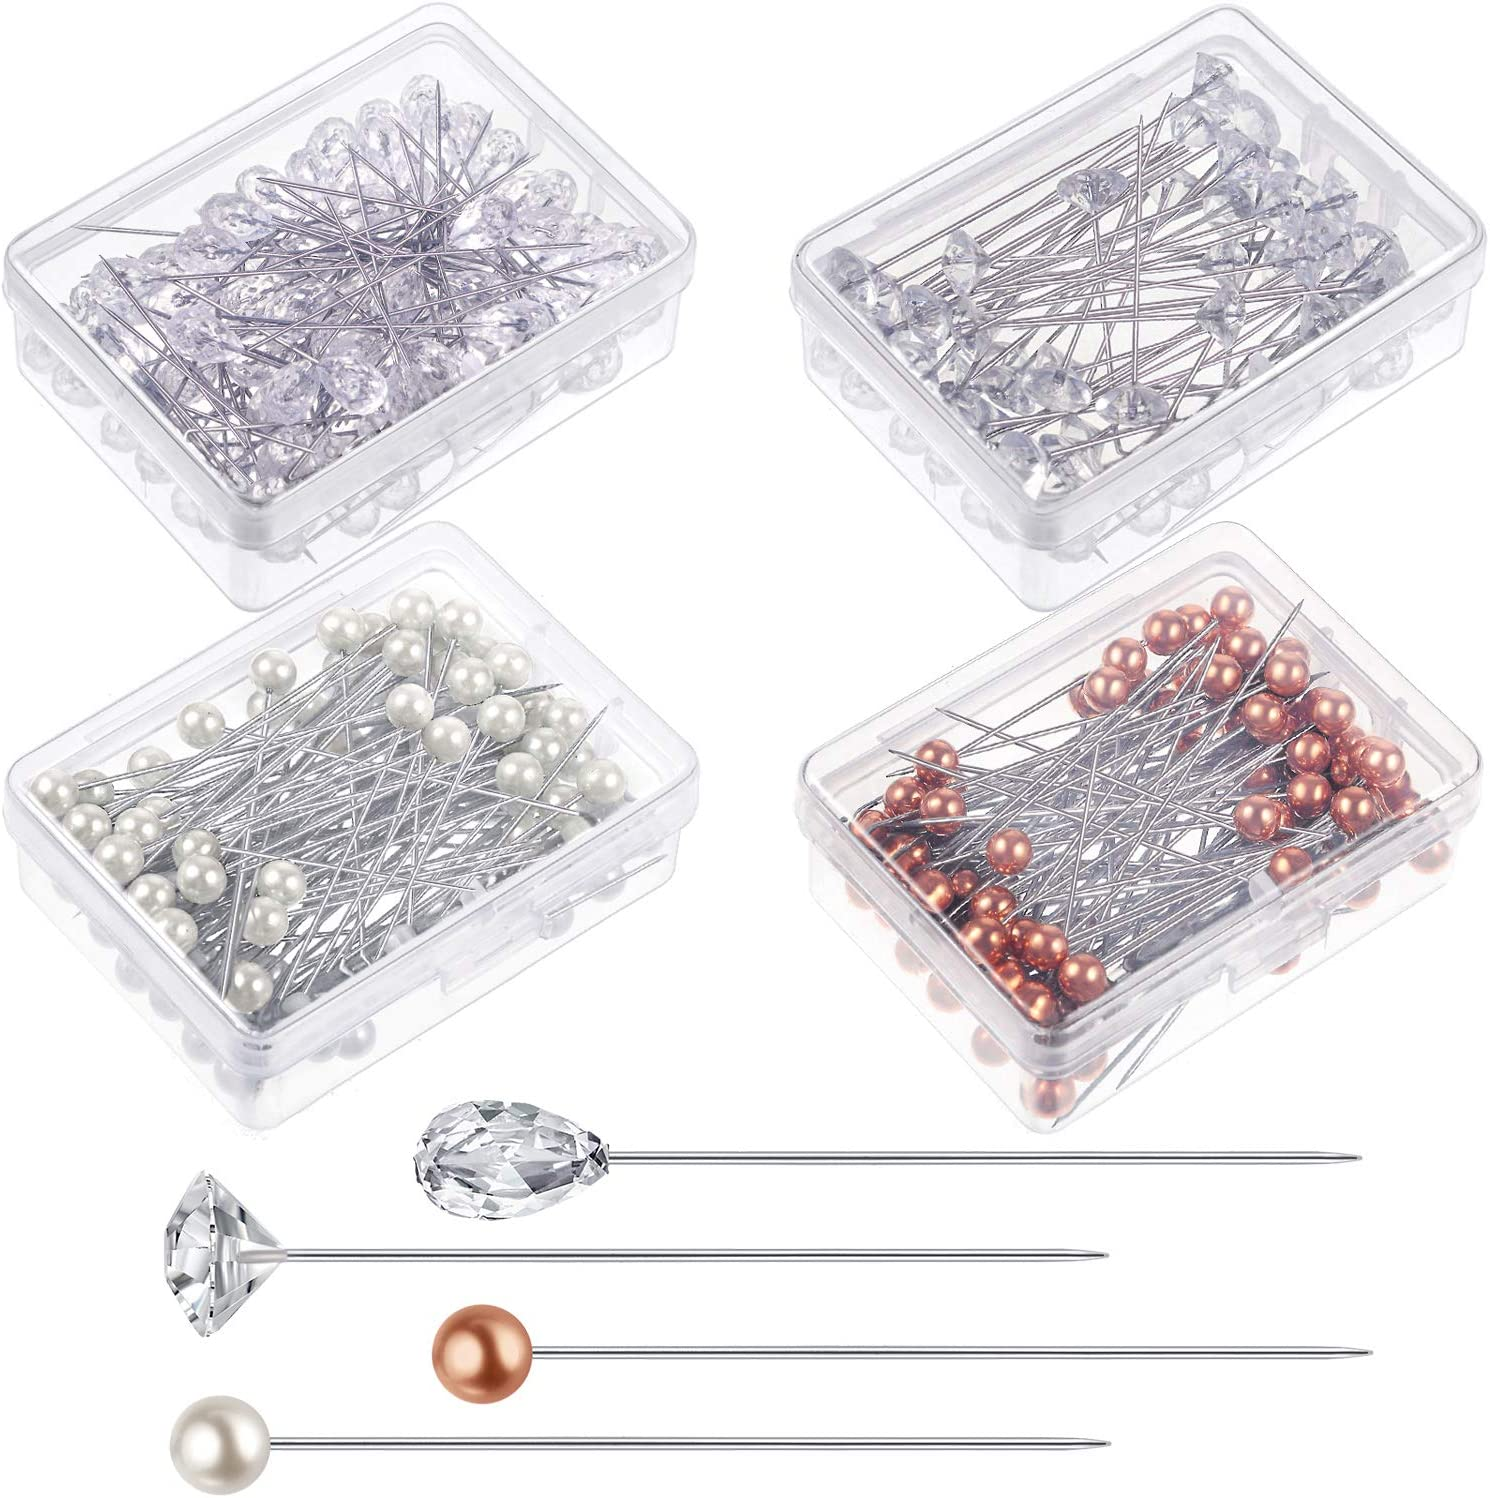 300 PCS 3 Styles White Pearl Corsage Pins Wedding Flower Bouquet Round Glass Ball Head Diamond Head Teardrop Head Straight Pins with Transparent Box for Weddings Anniversary Flower Decoration